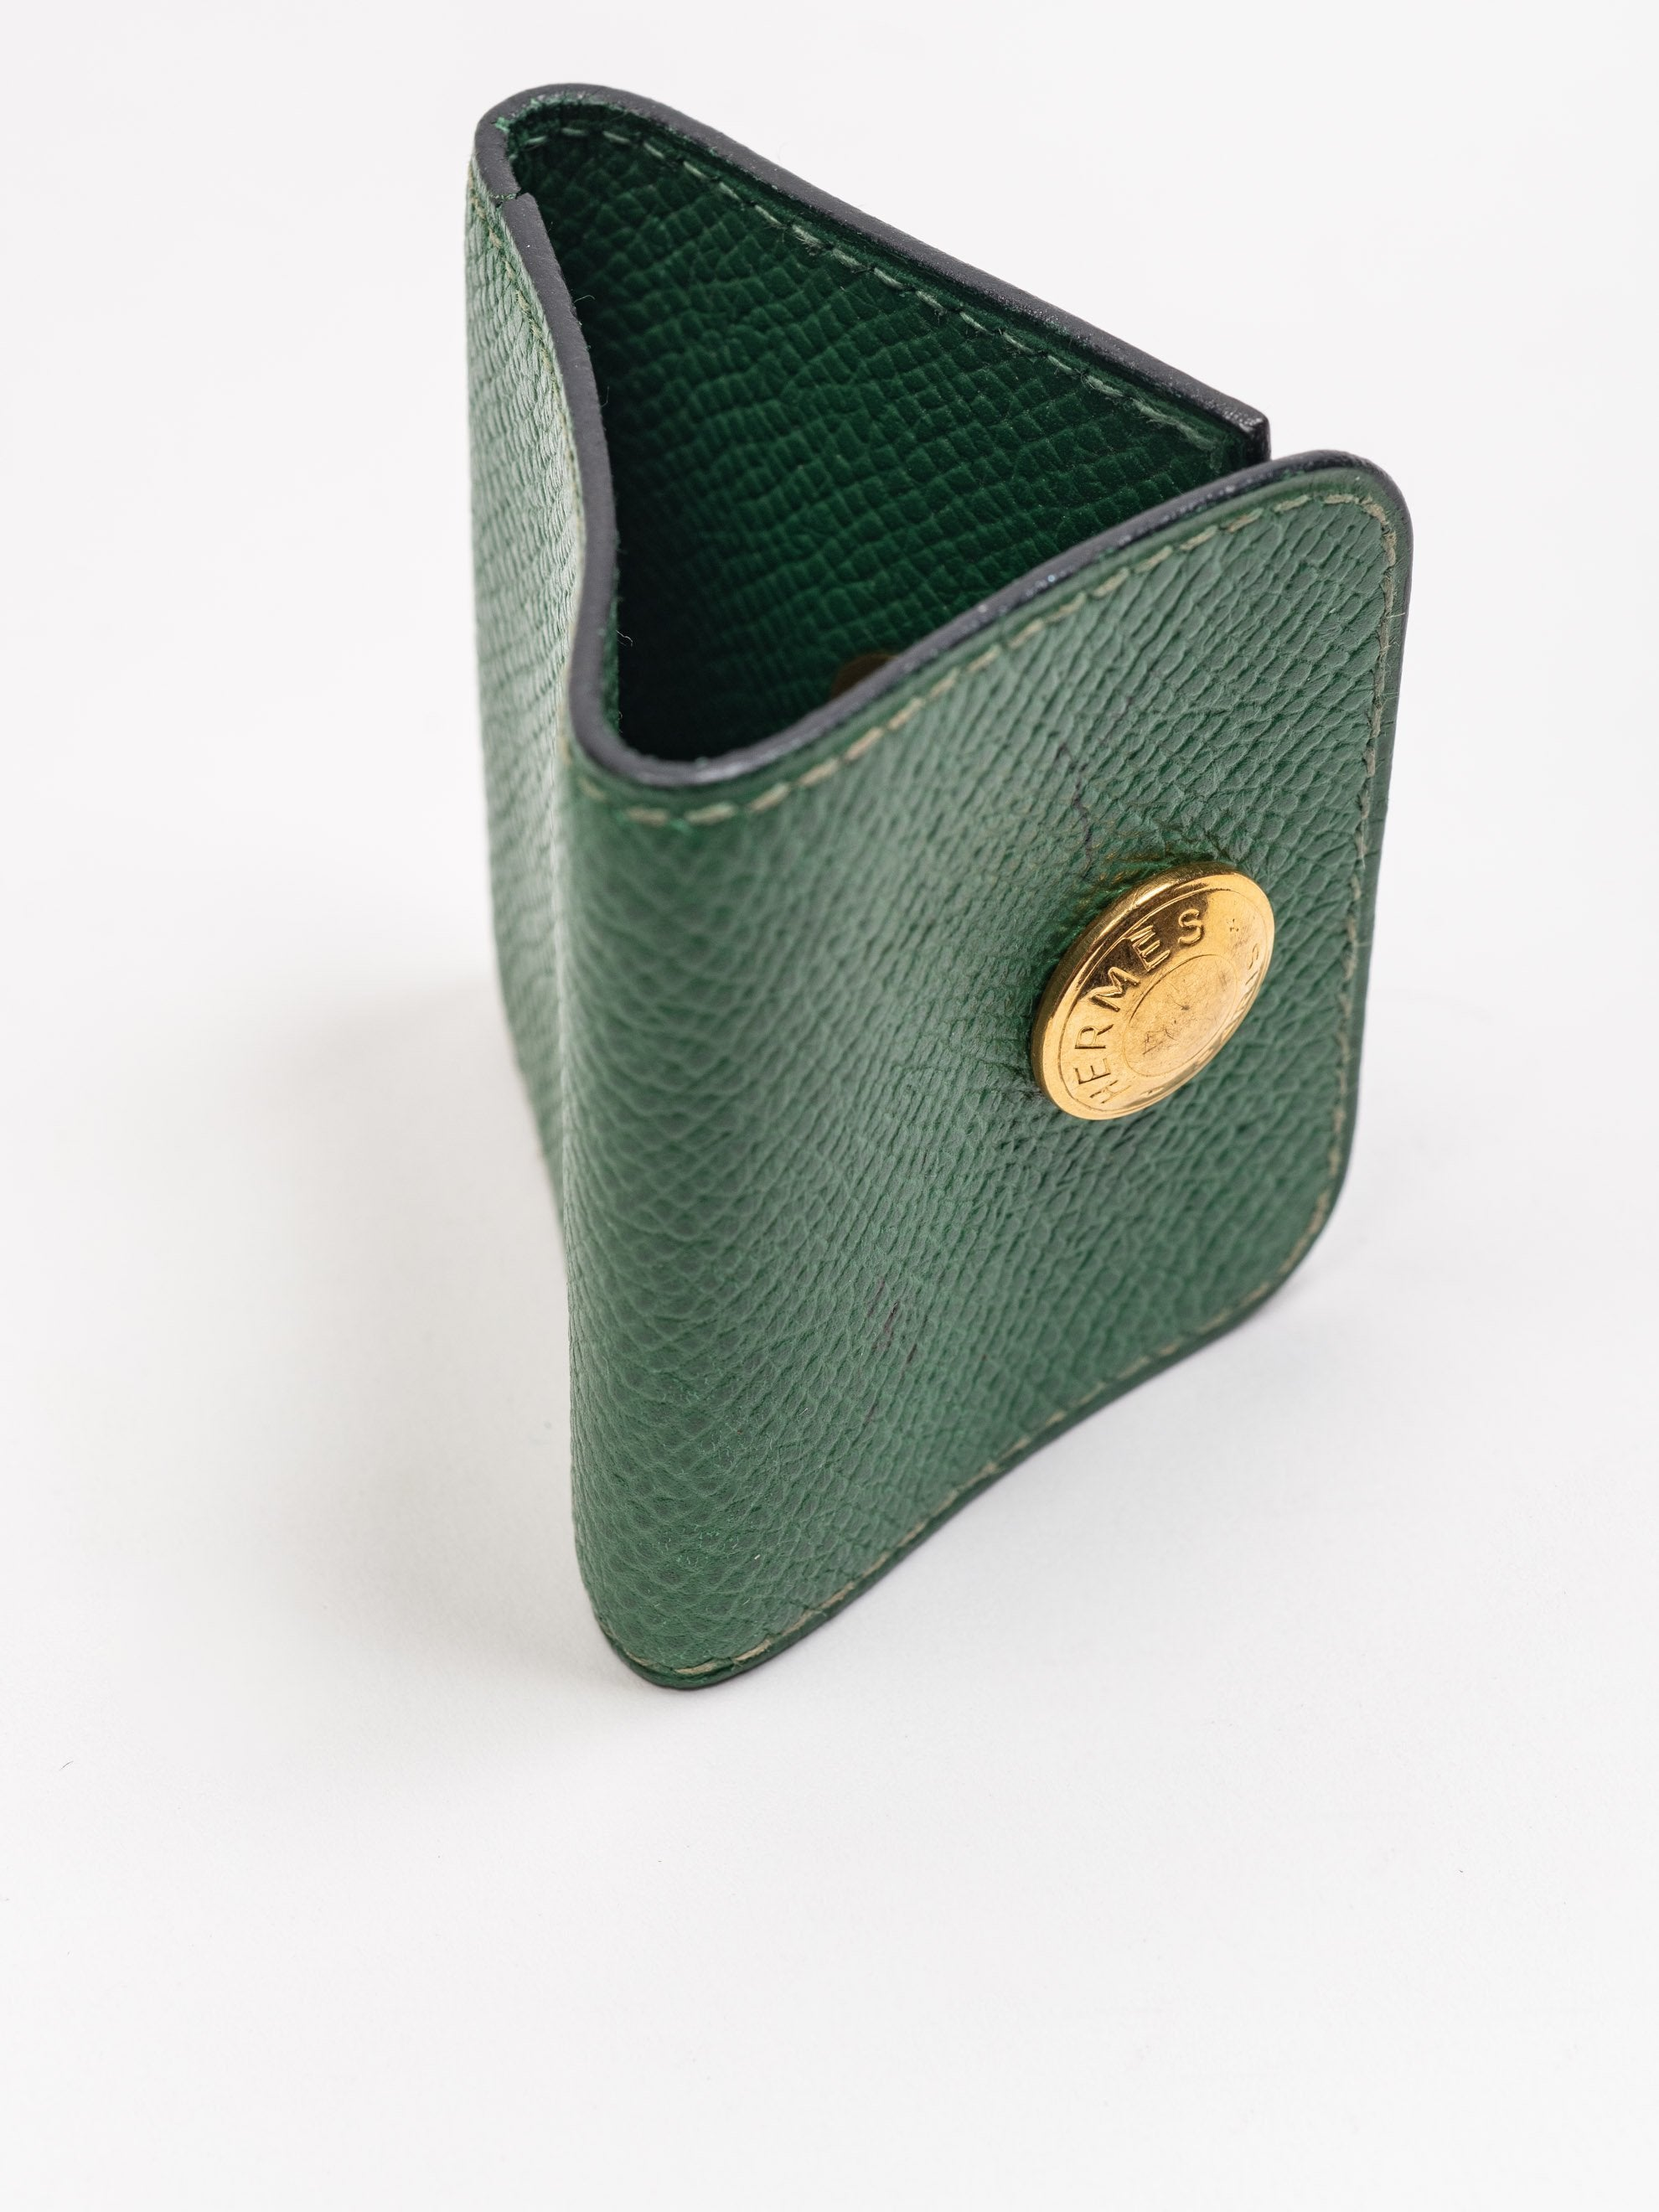 Green Vintage Leather Hermes Mini Coin Pouch 6